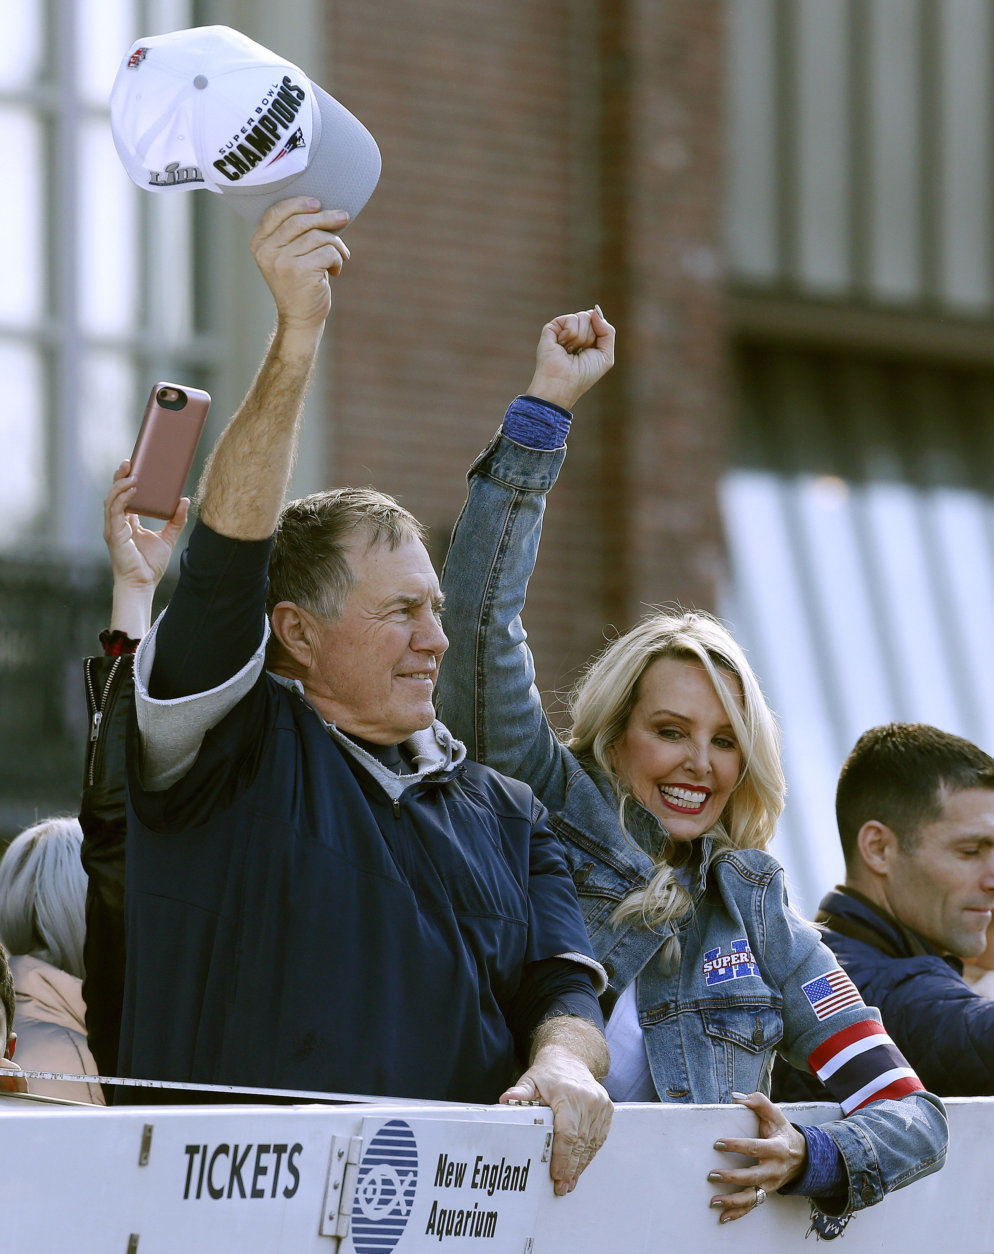 New England Patriots head coach Bill Belichick and partner Linda Holliday wave as the team parades through downtown Boston, Tuesday, Feb. 5, 2019, to celebrate their win over the Los Angeles Rams in Sunday's NFL Super Bowl 53 football game in Atlanta. (AP Photo/Michael Dwyer)